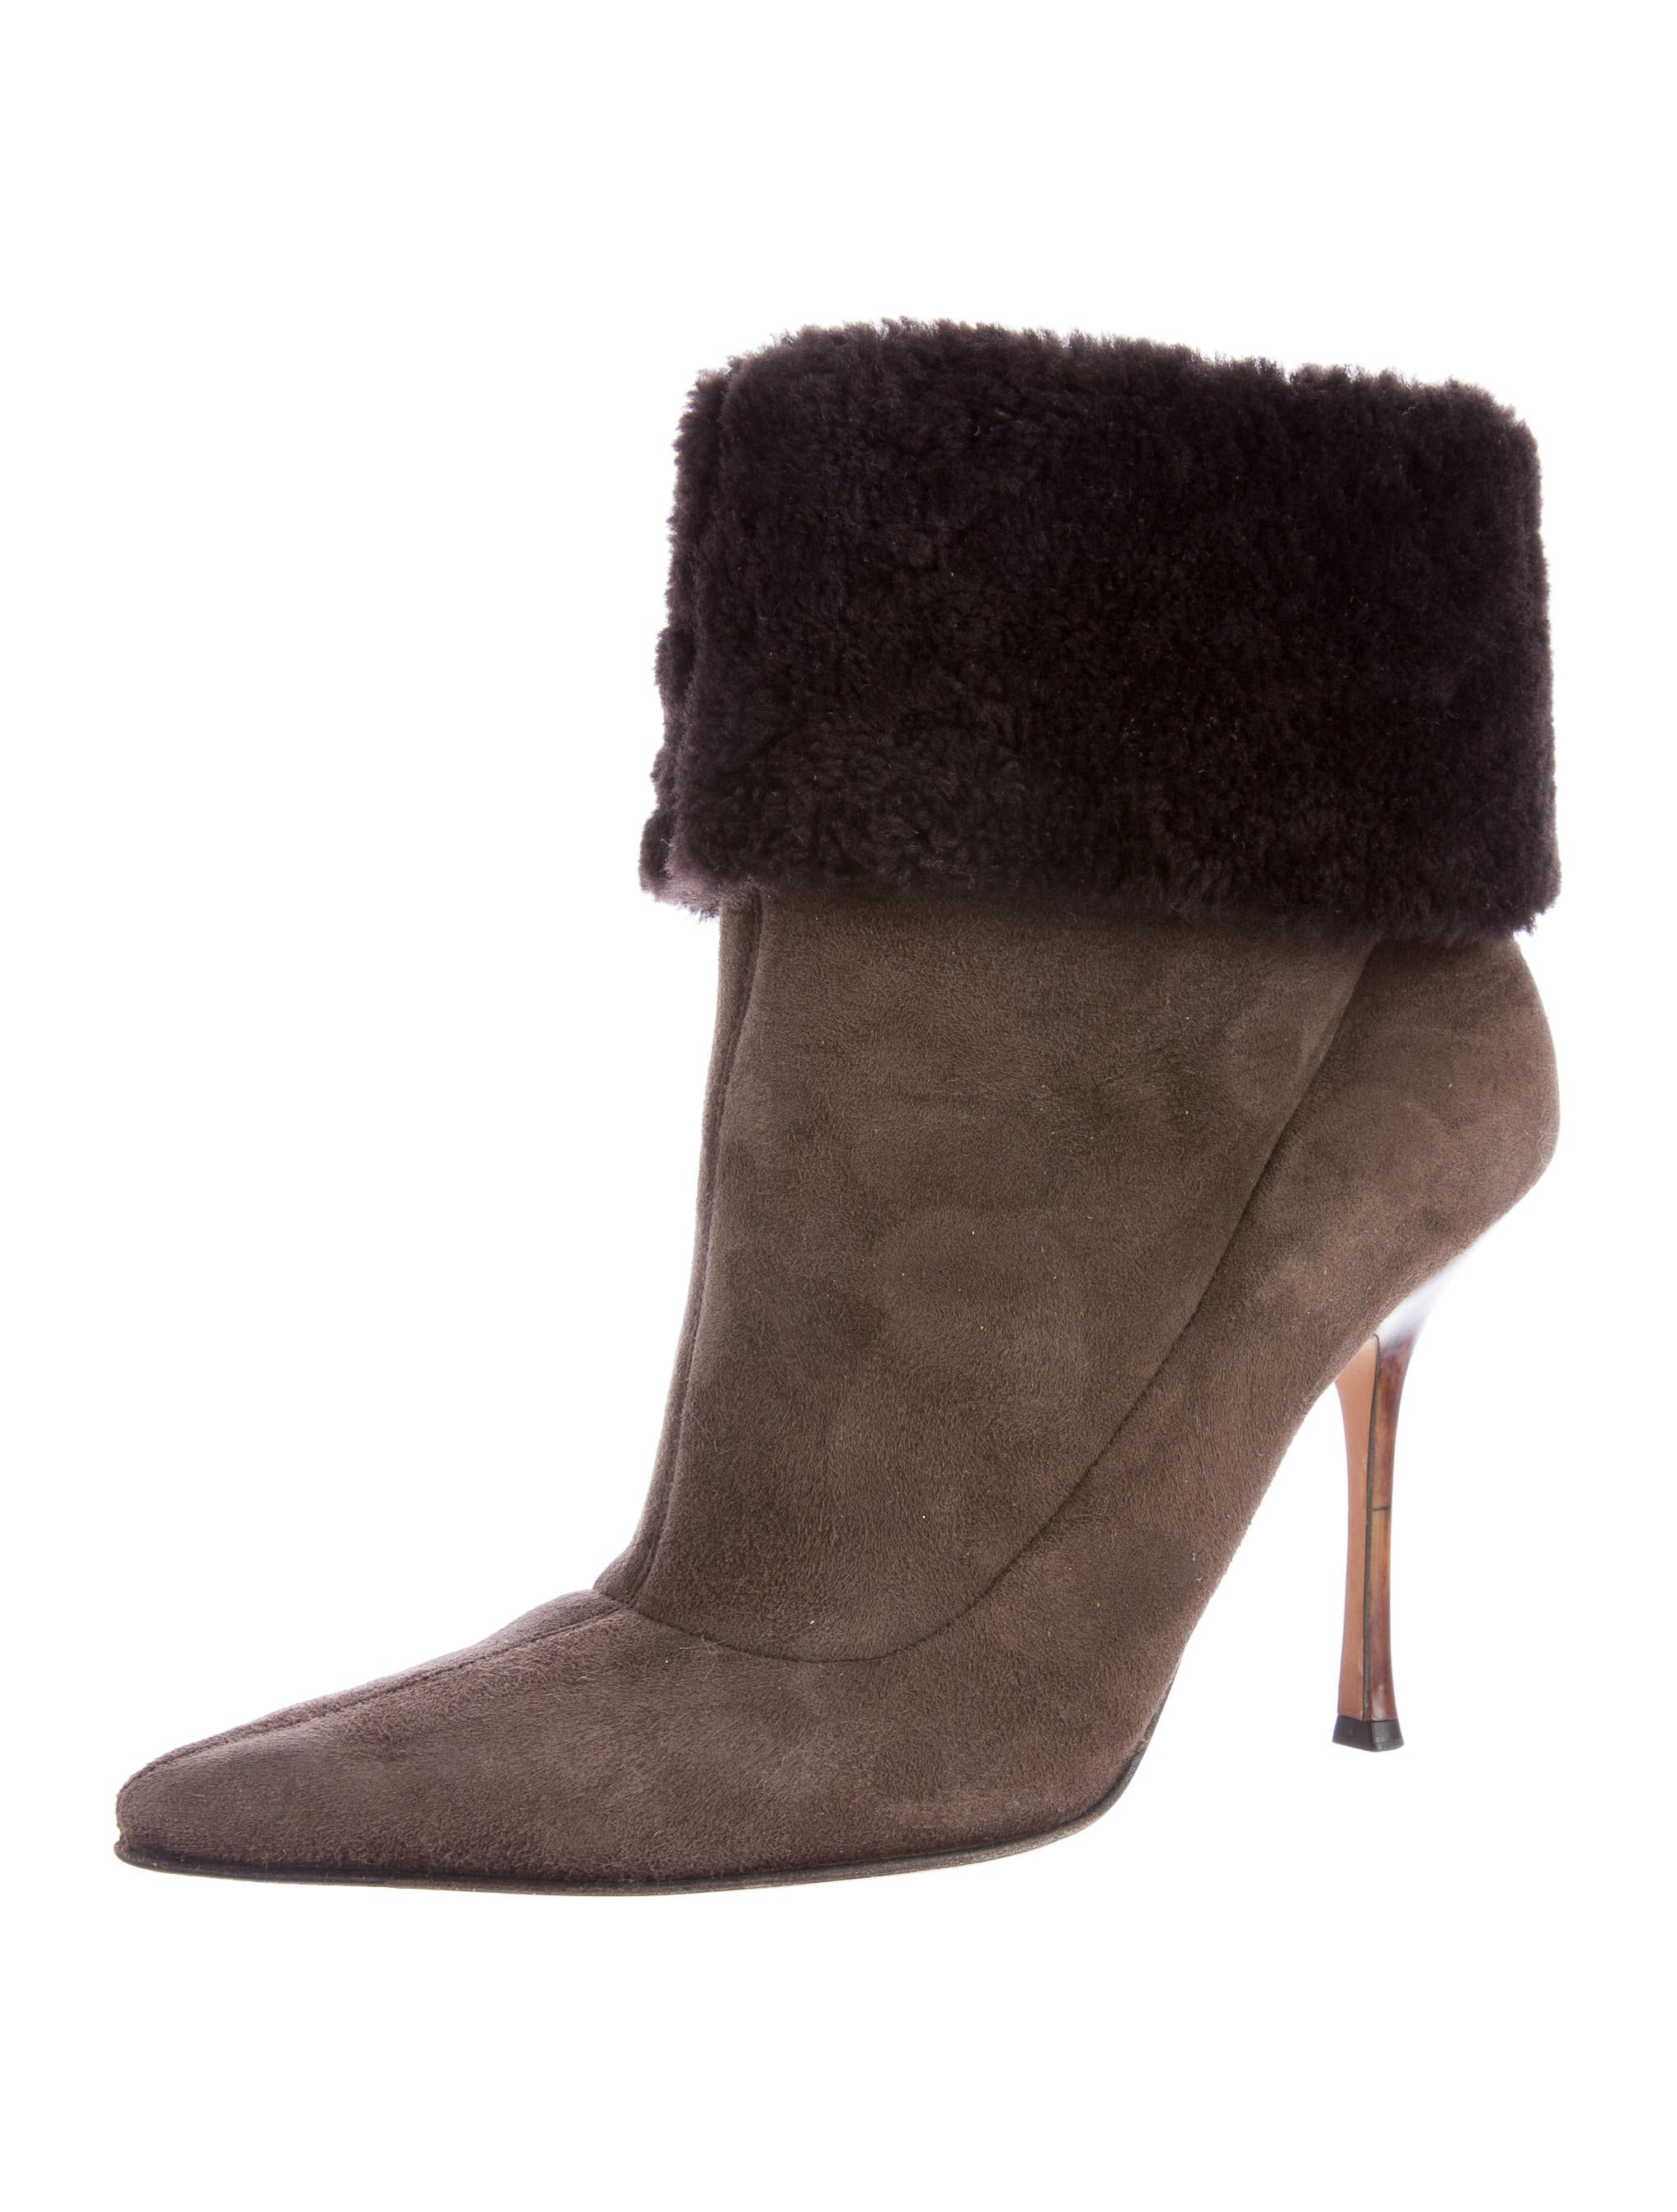 Jimmy Choo Shearling Pointed-Toe Ankle Boots looking for cheap online cheap price from china cheap sale best wholesale buy cheap with credit card sBZNtOQ